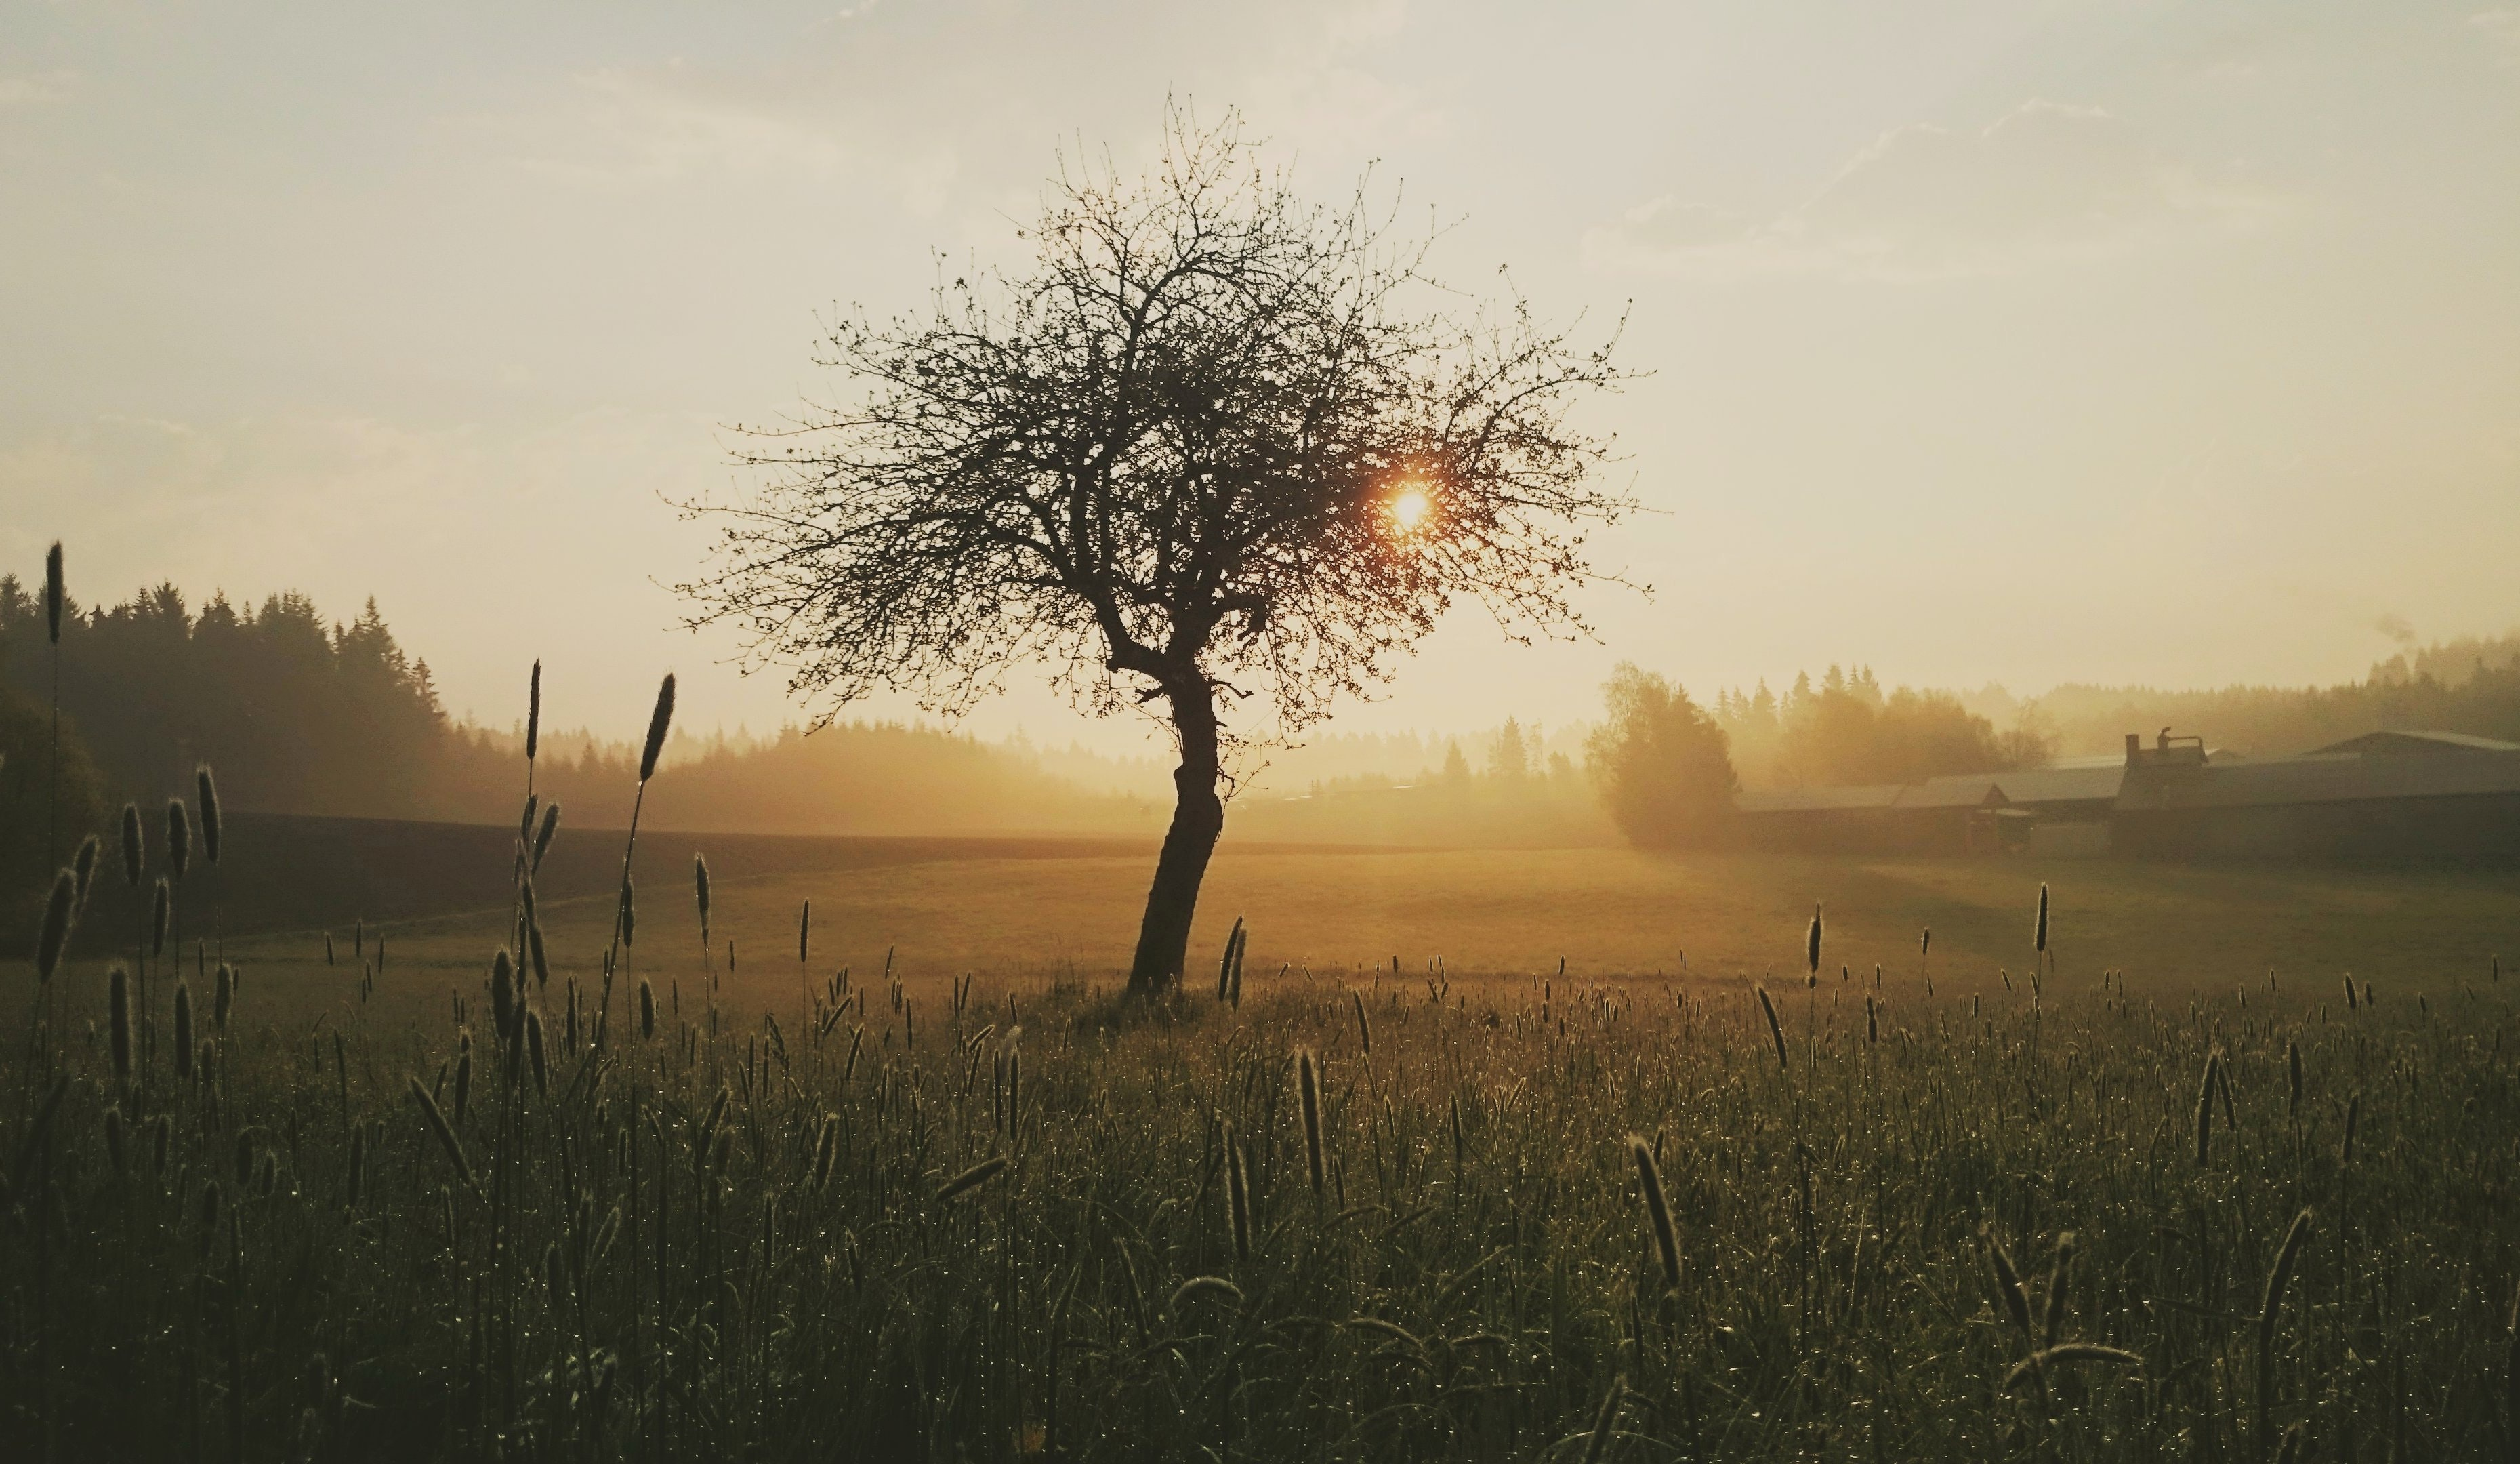 Silhouette photo of tree and grass during golden hour